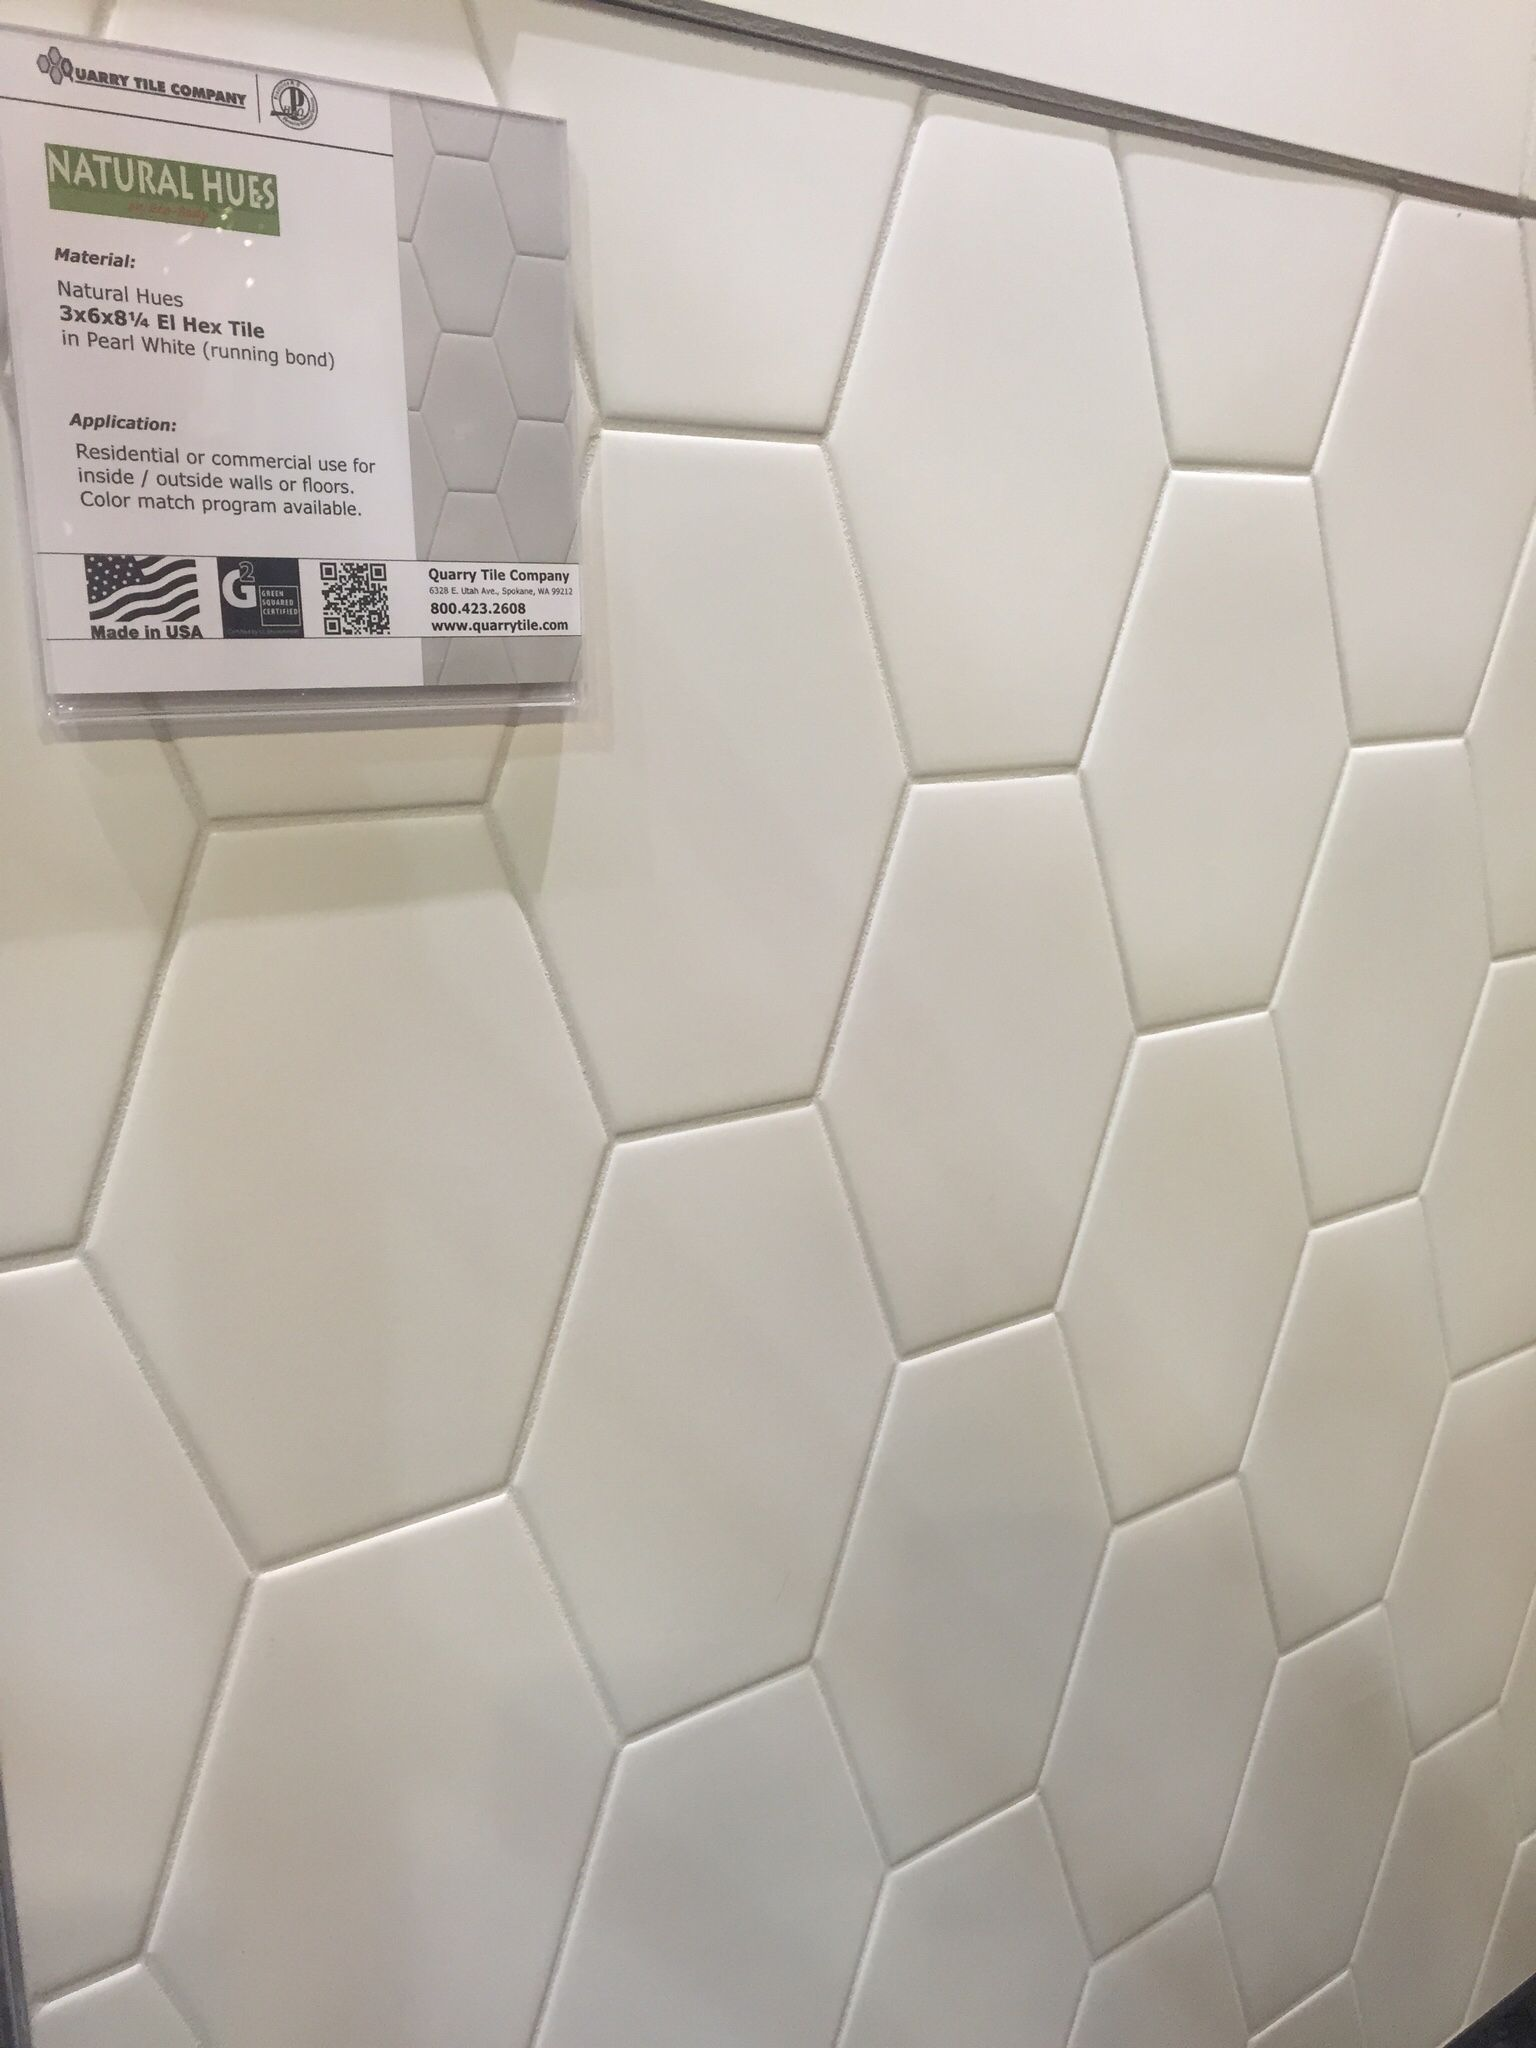 Natural Hues - 3x6x8 El Hex Daltile elongated hexagon tile white ...